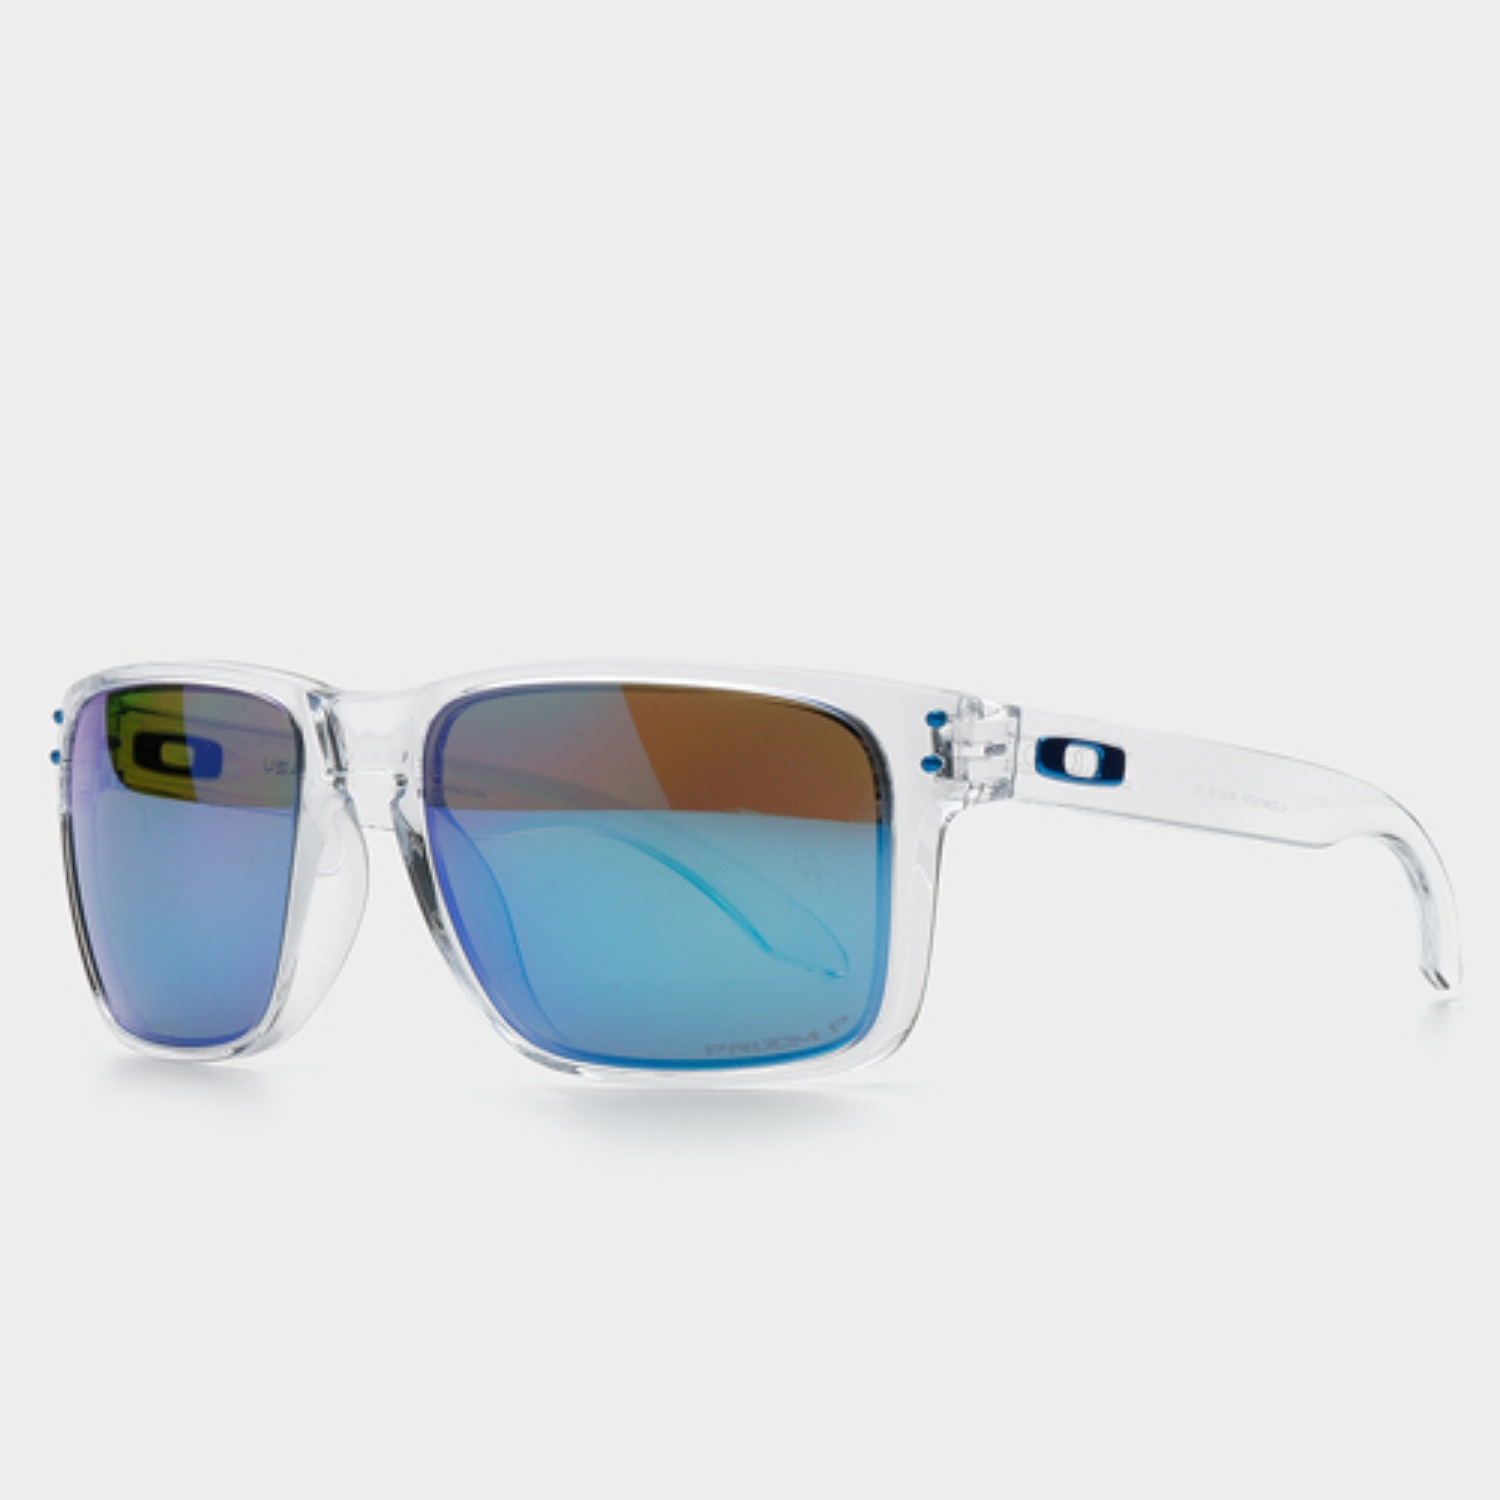 HOLBROOK OO9417 0759 (Polarized Blue Mirror)